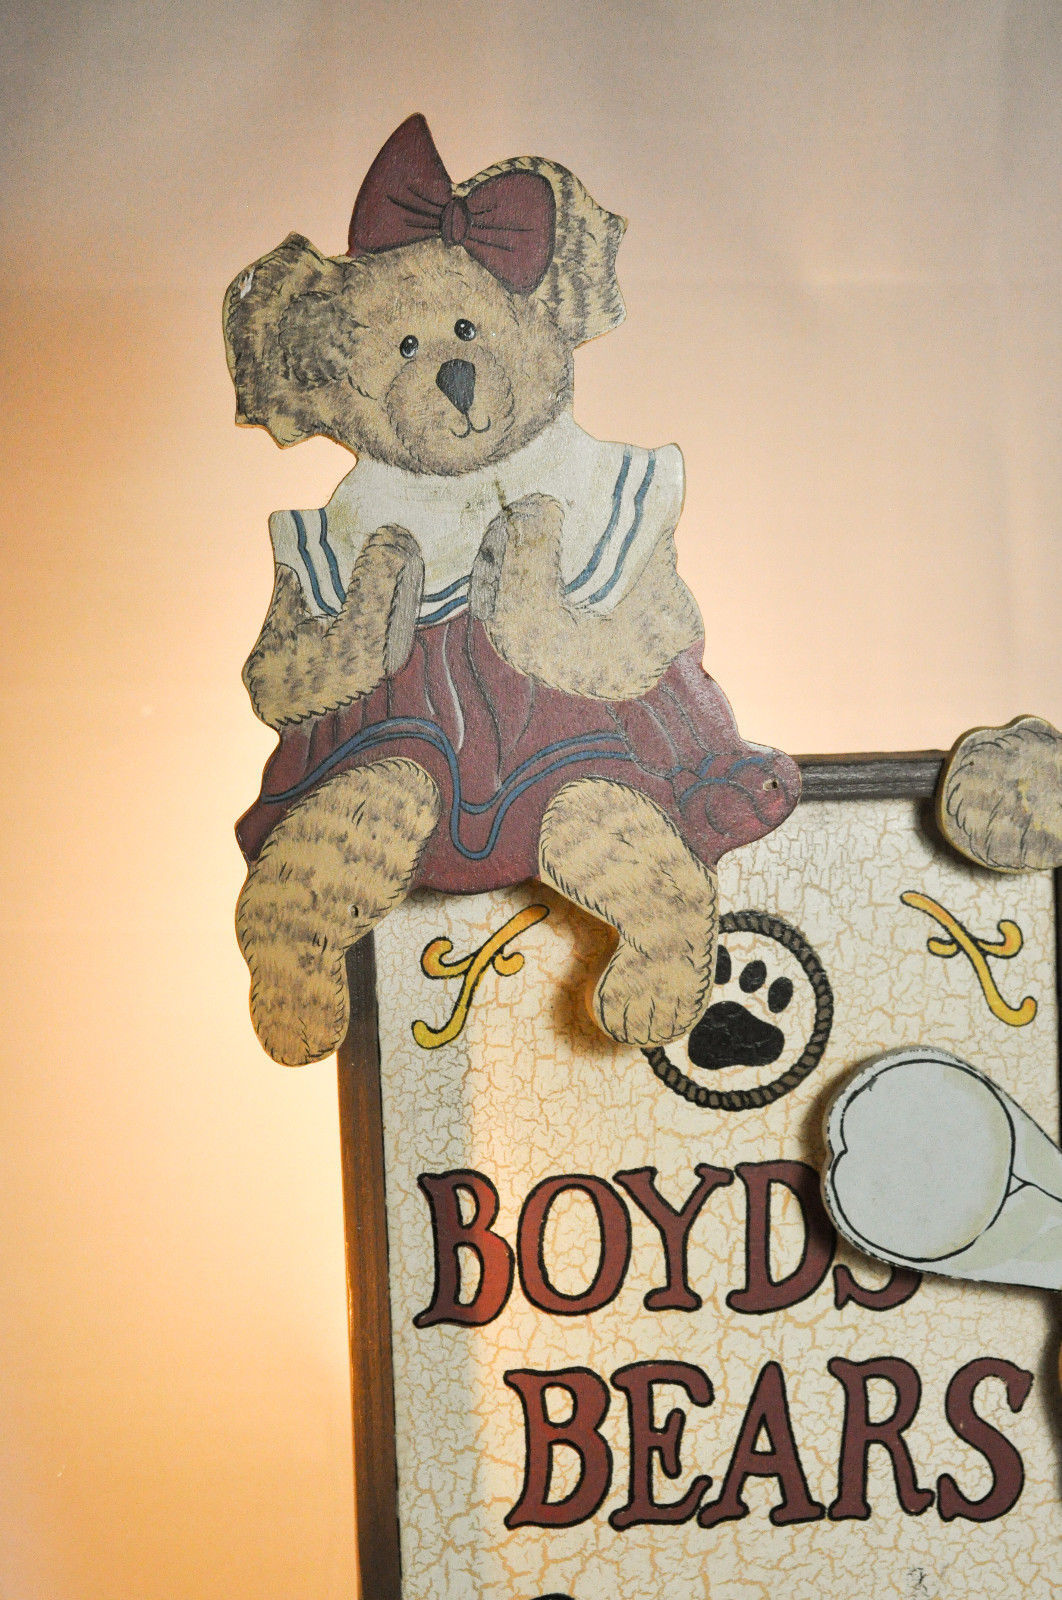 "Boyds Bears: Boyds Bears Spoken Here - Display Stand - # 654900 - 15"" x 8 1/2"" image 4"